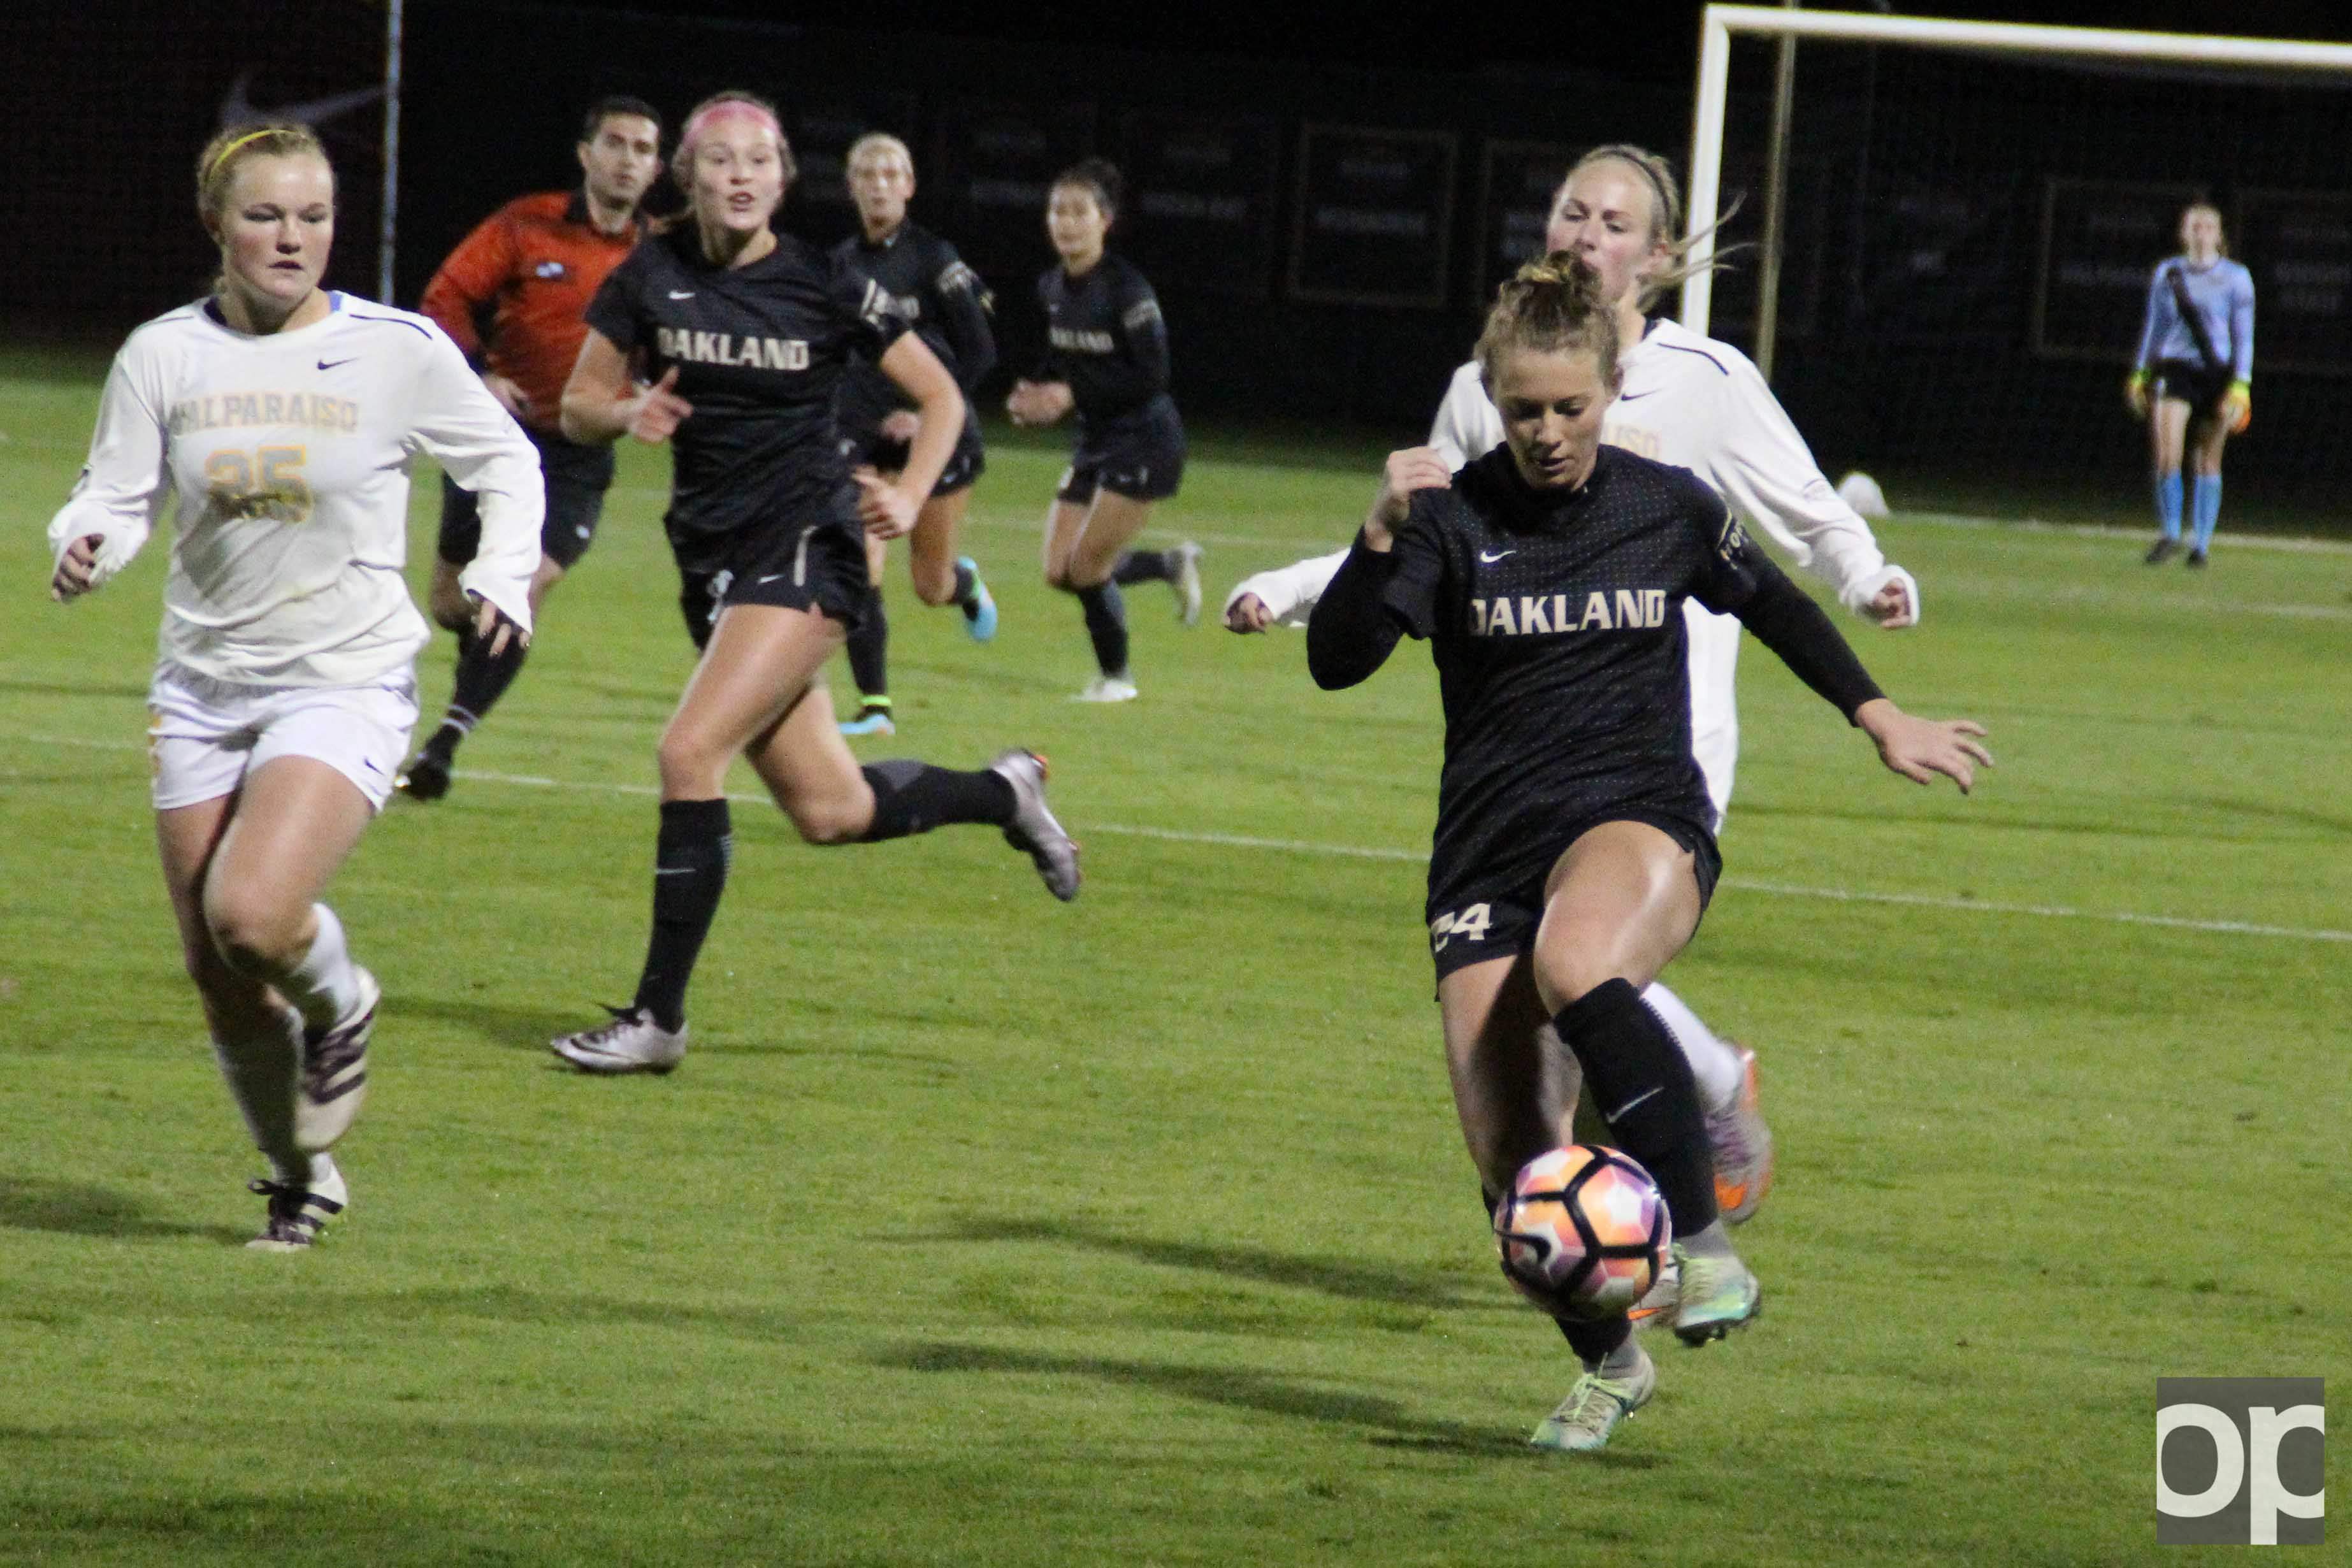 Oakland women's soccer scored three goals in the second half in the Horizon League championship quarterfinals against Valparaiso and